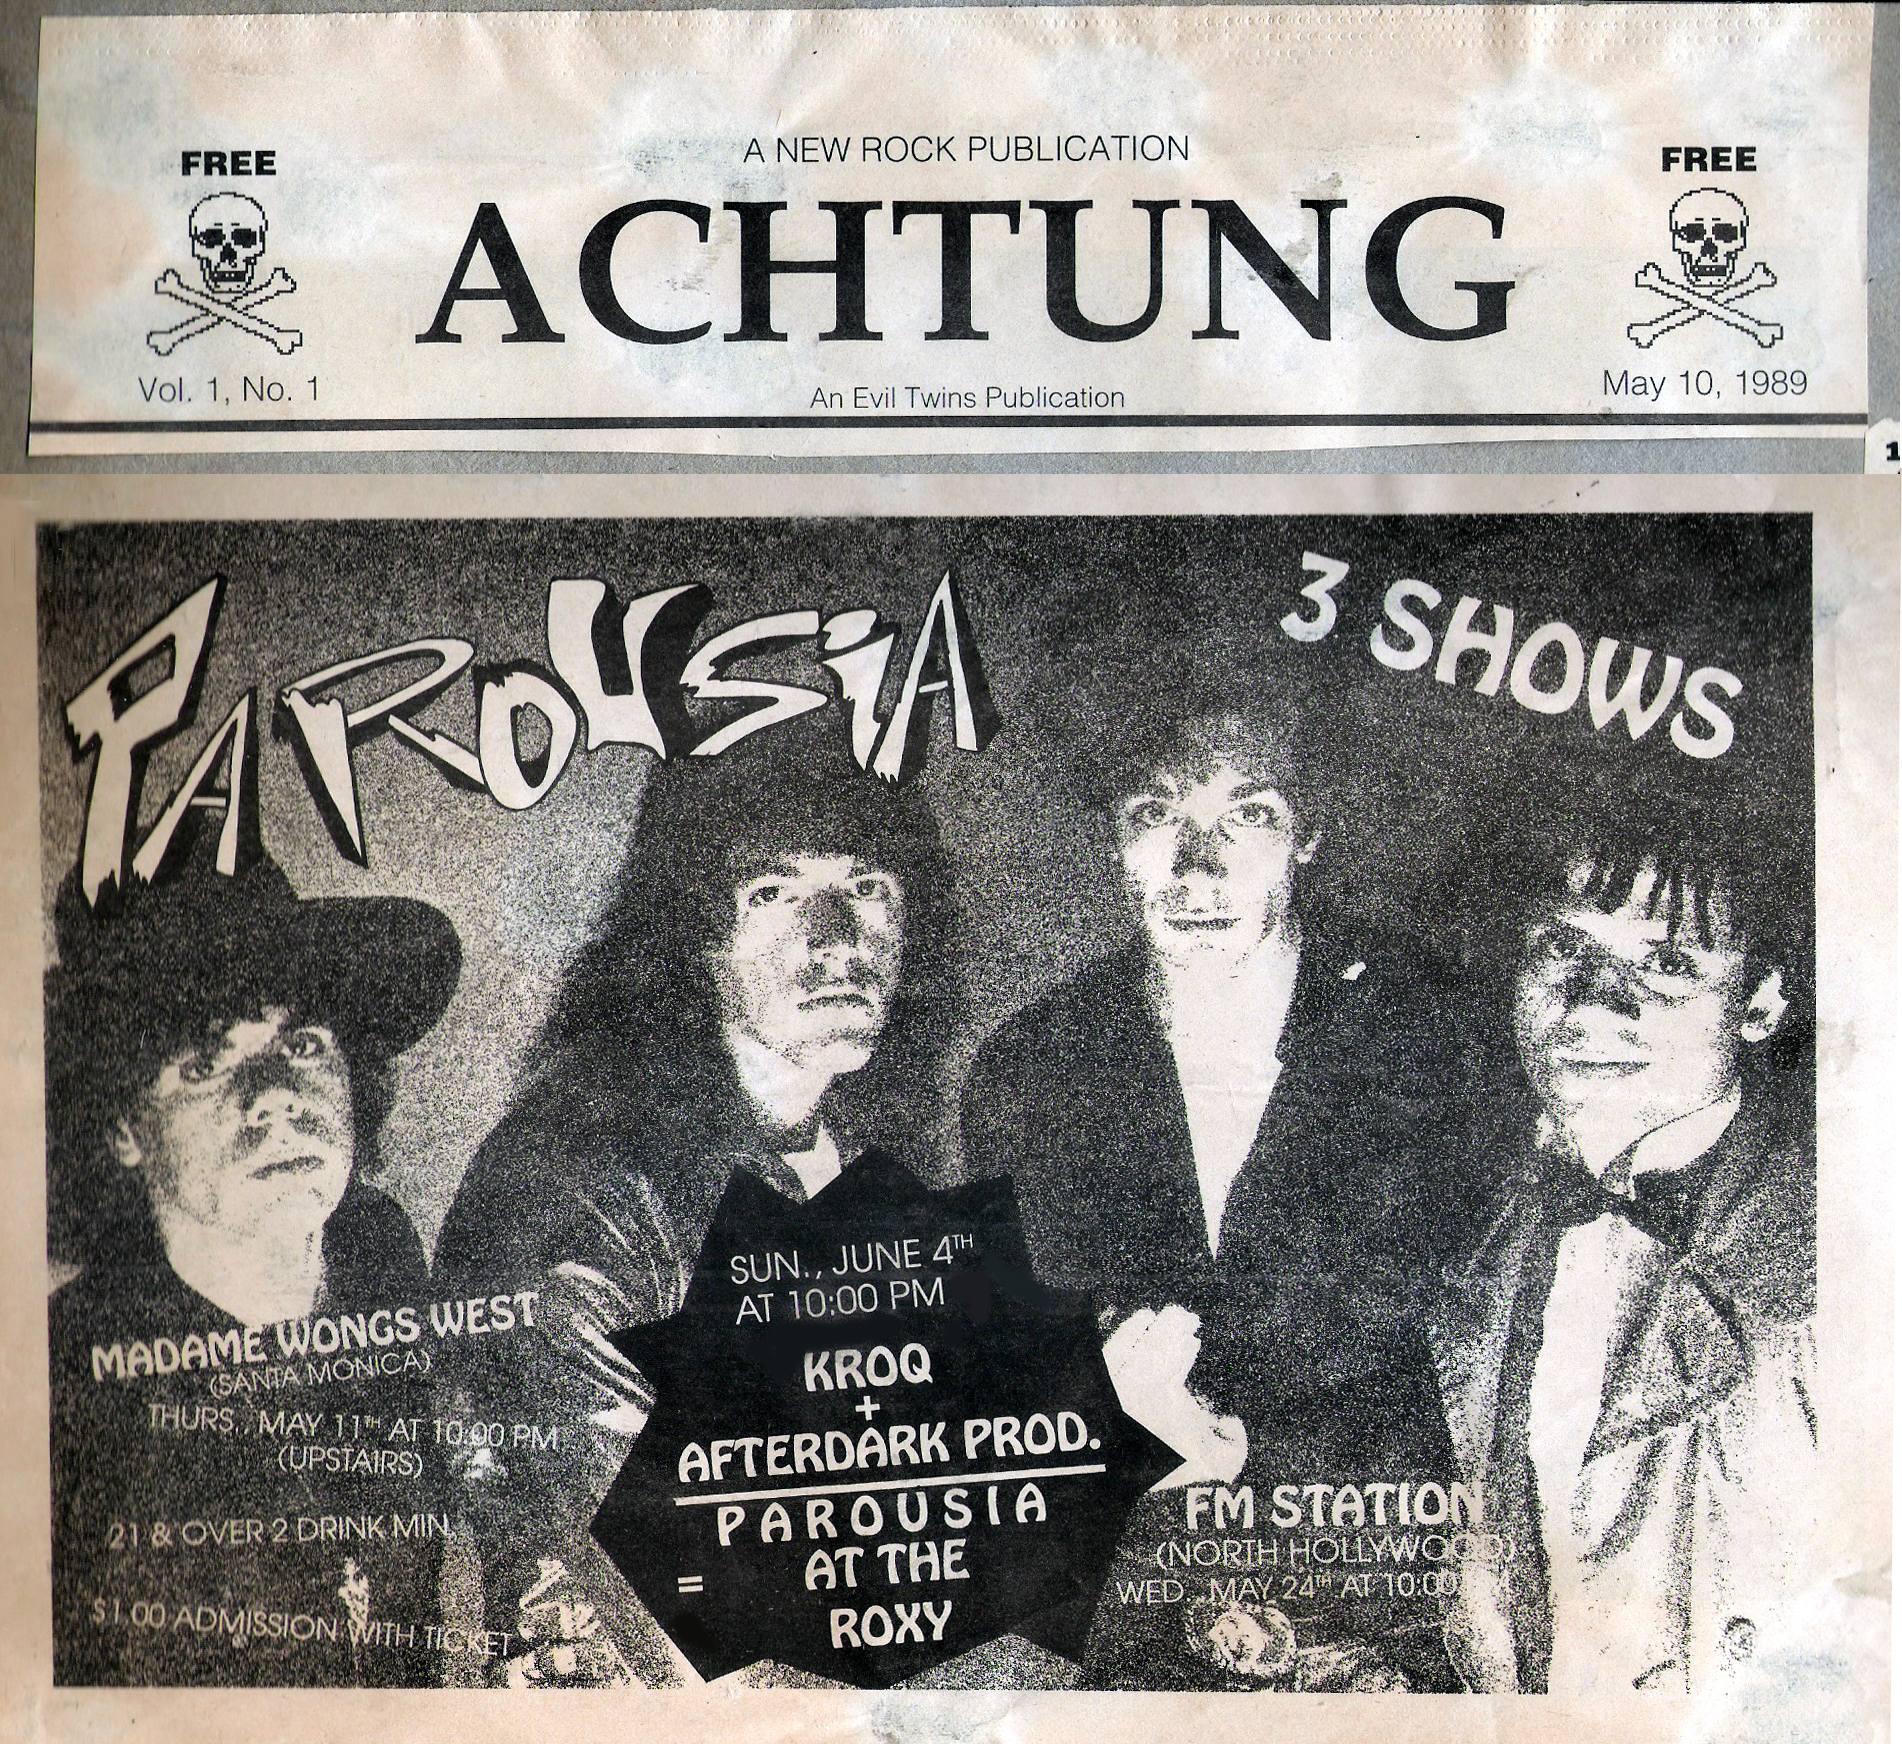 Half-Page ad in Achtung Magazine May 10, 1989